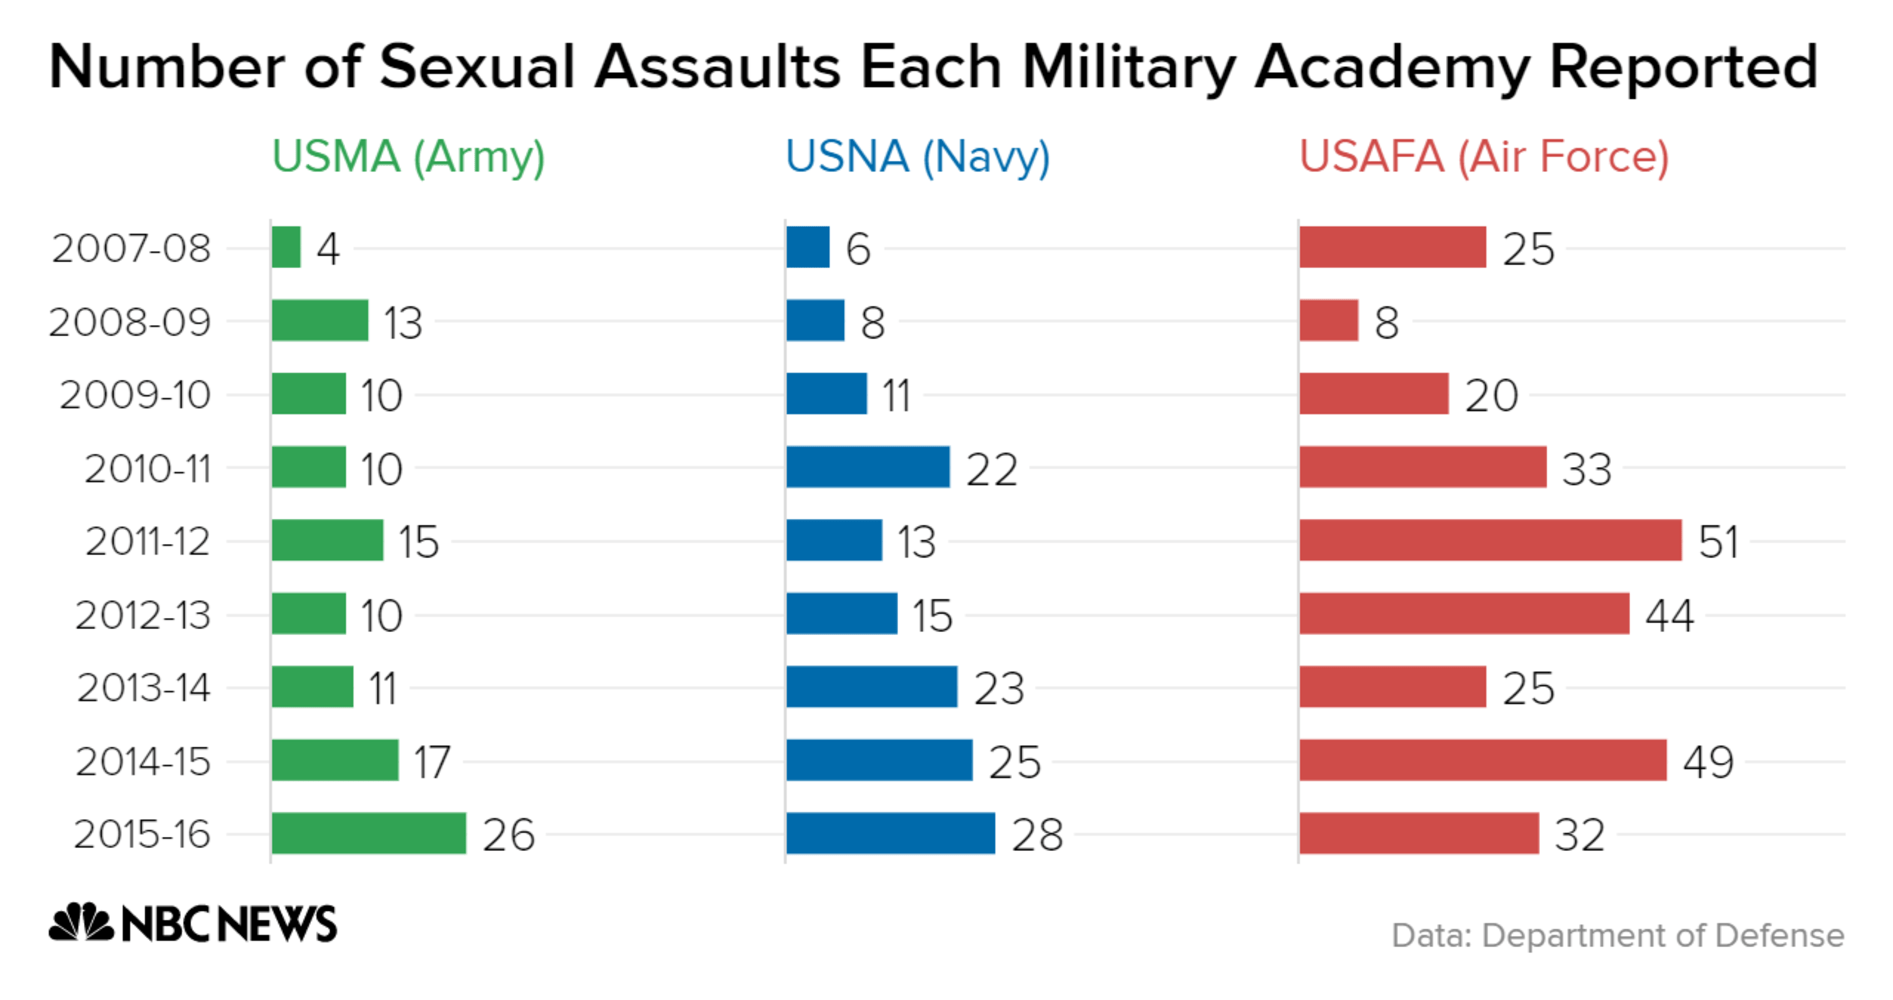 Naval Academy Sex Assaults at Record High